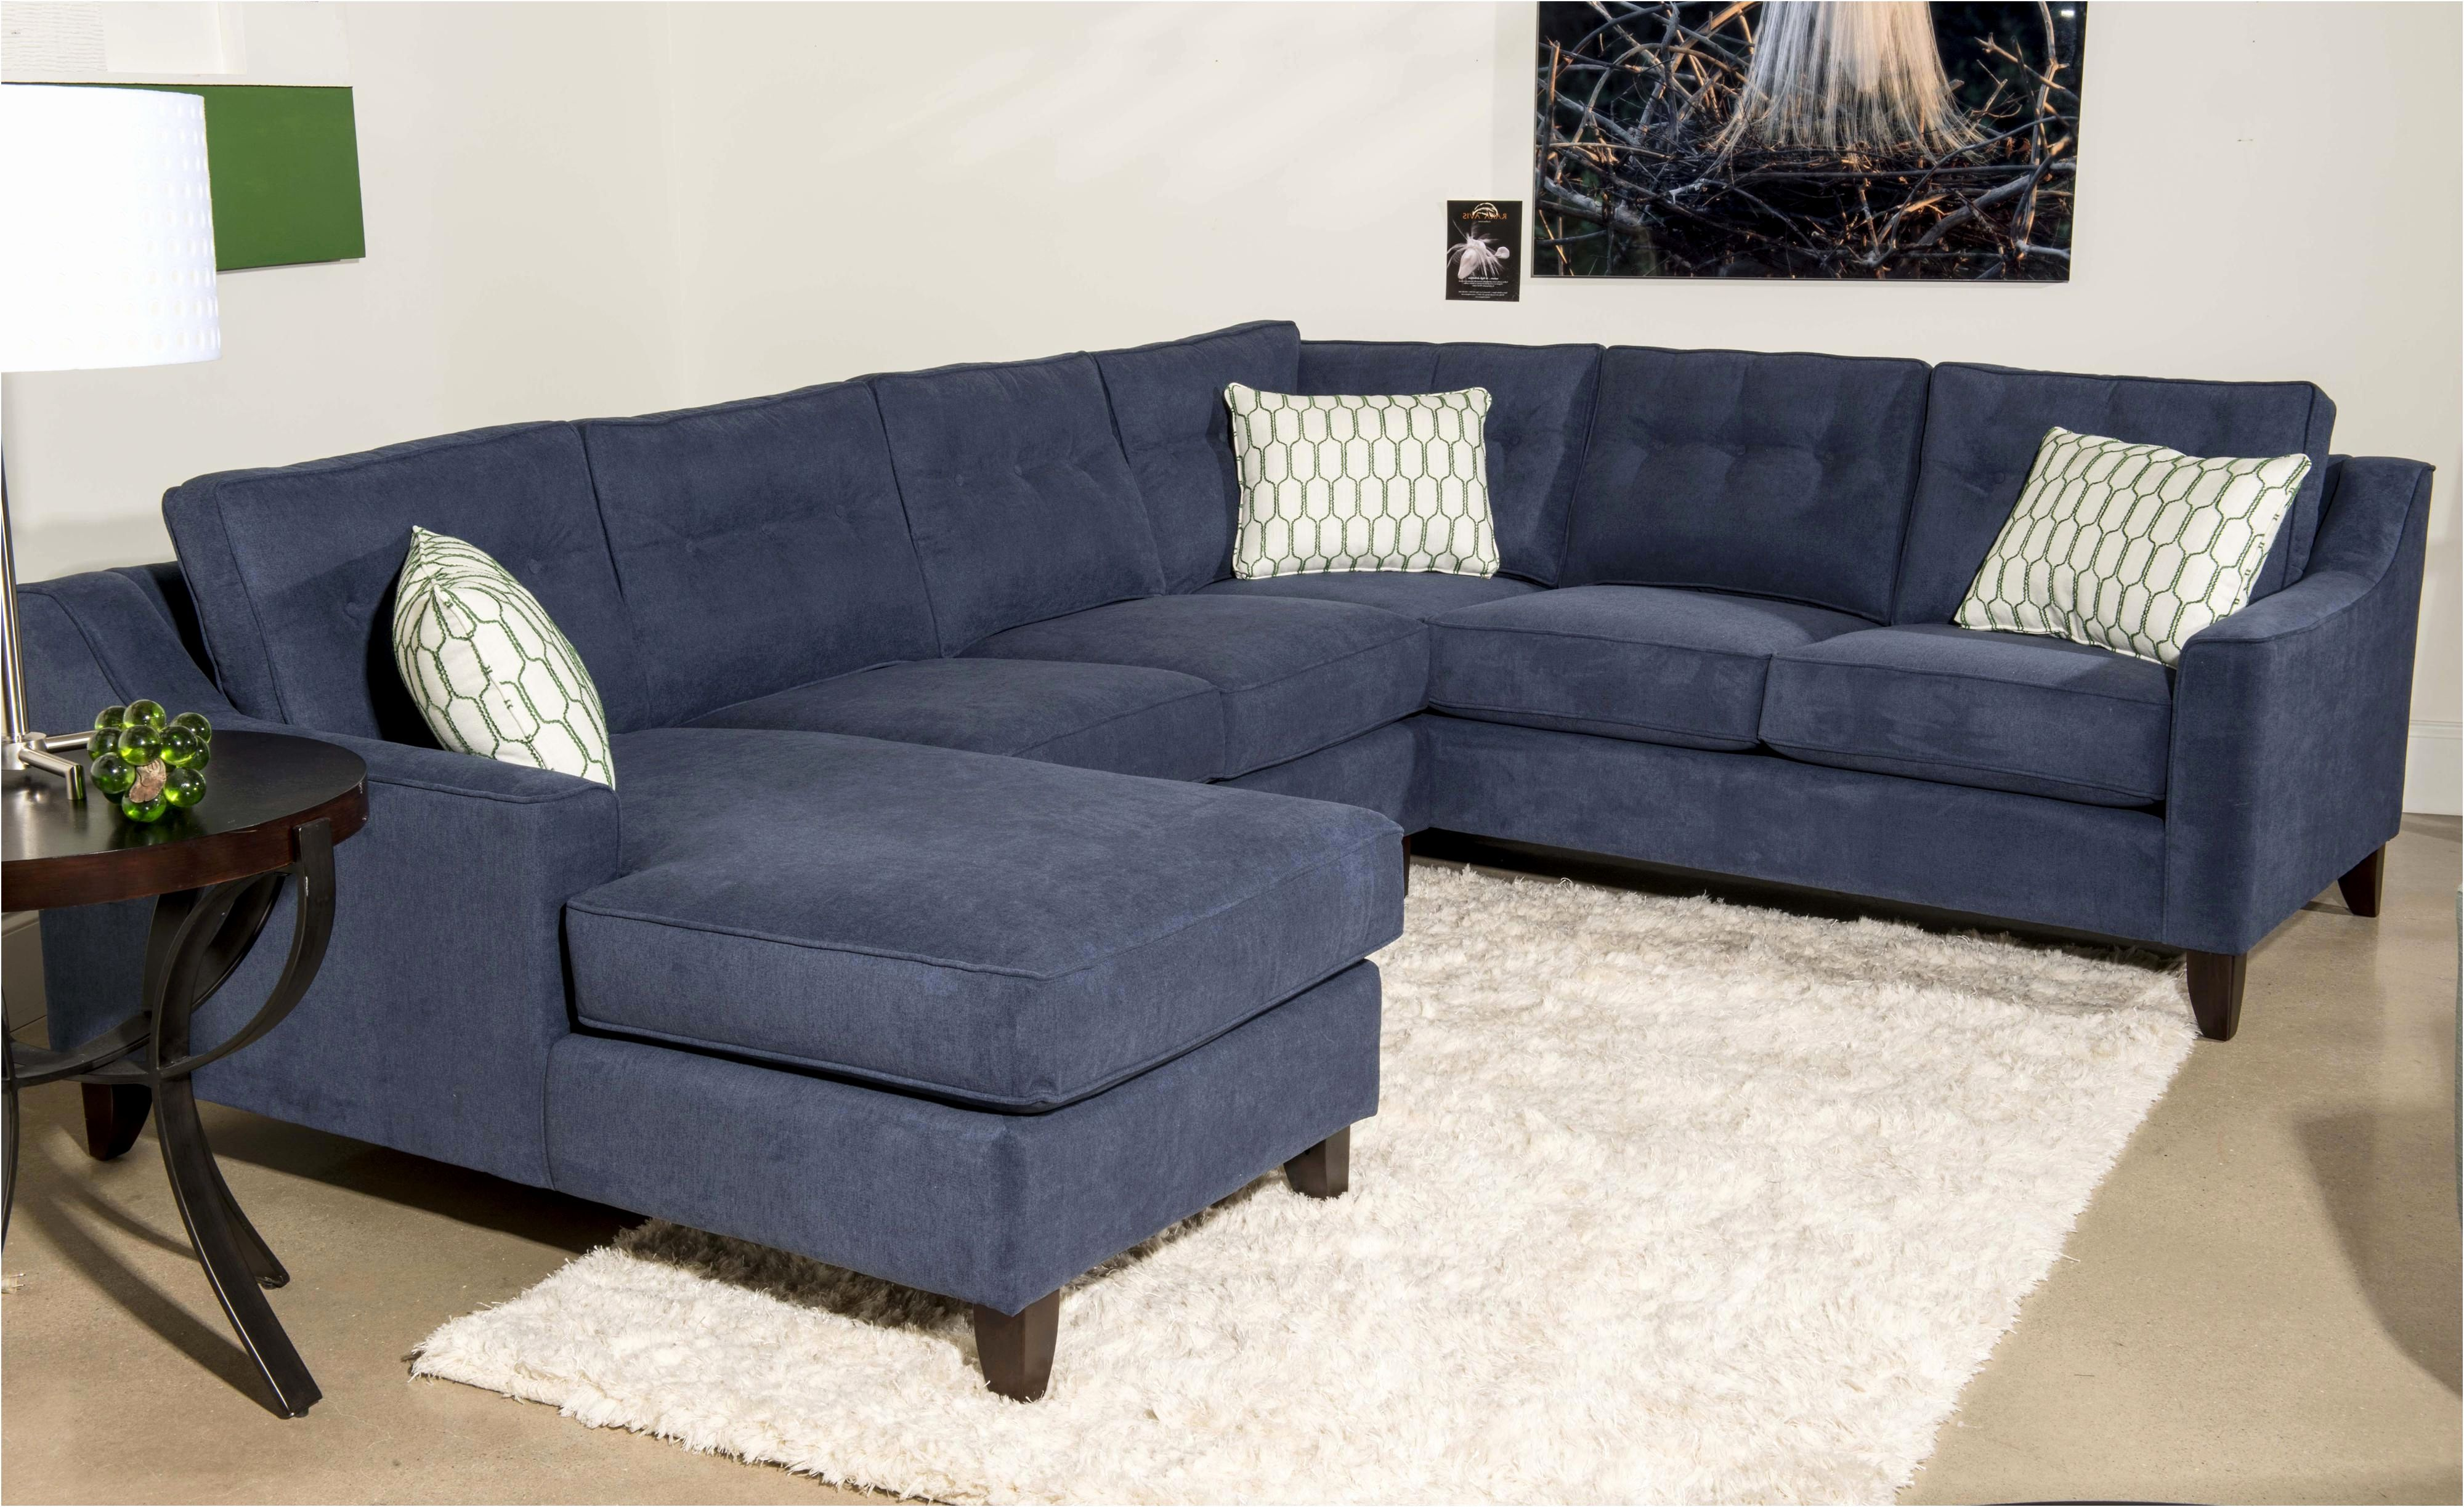 Best Of Elliot Fabric Microfiber Sectional Sofa Blue